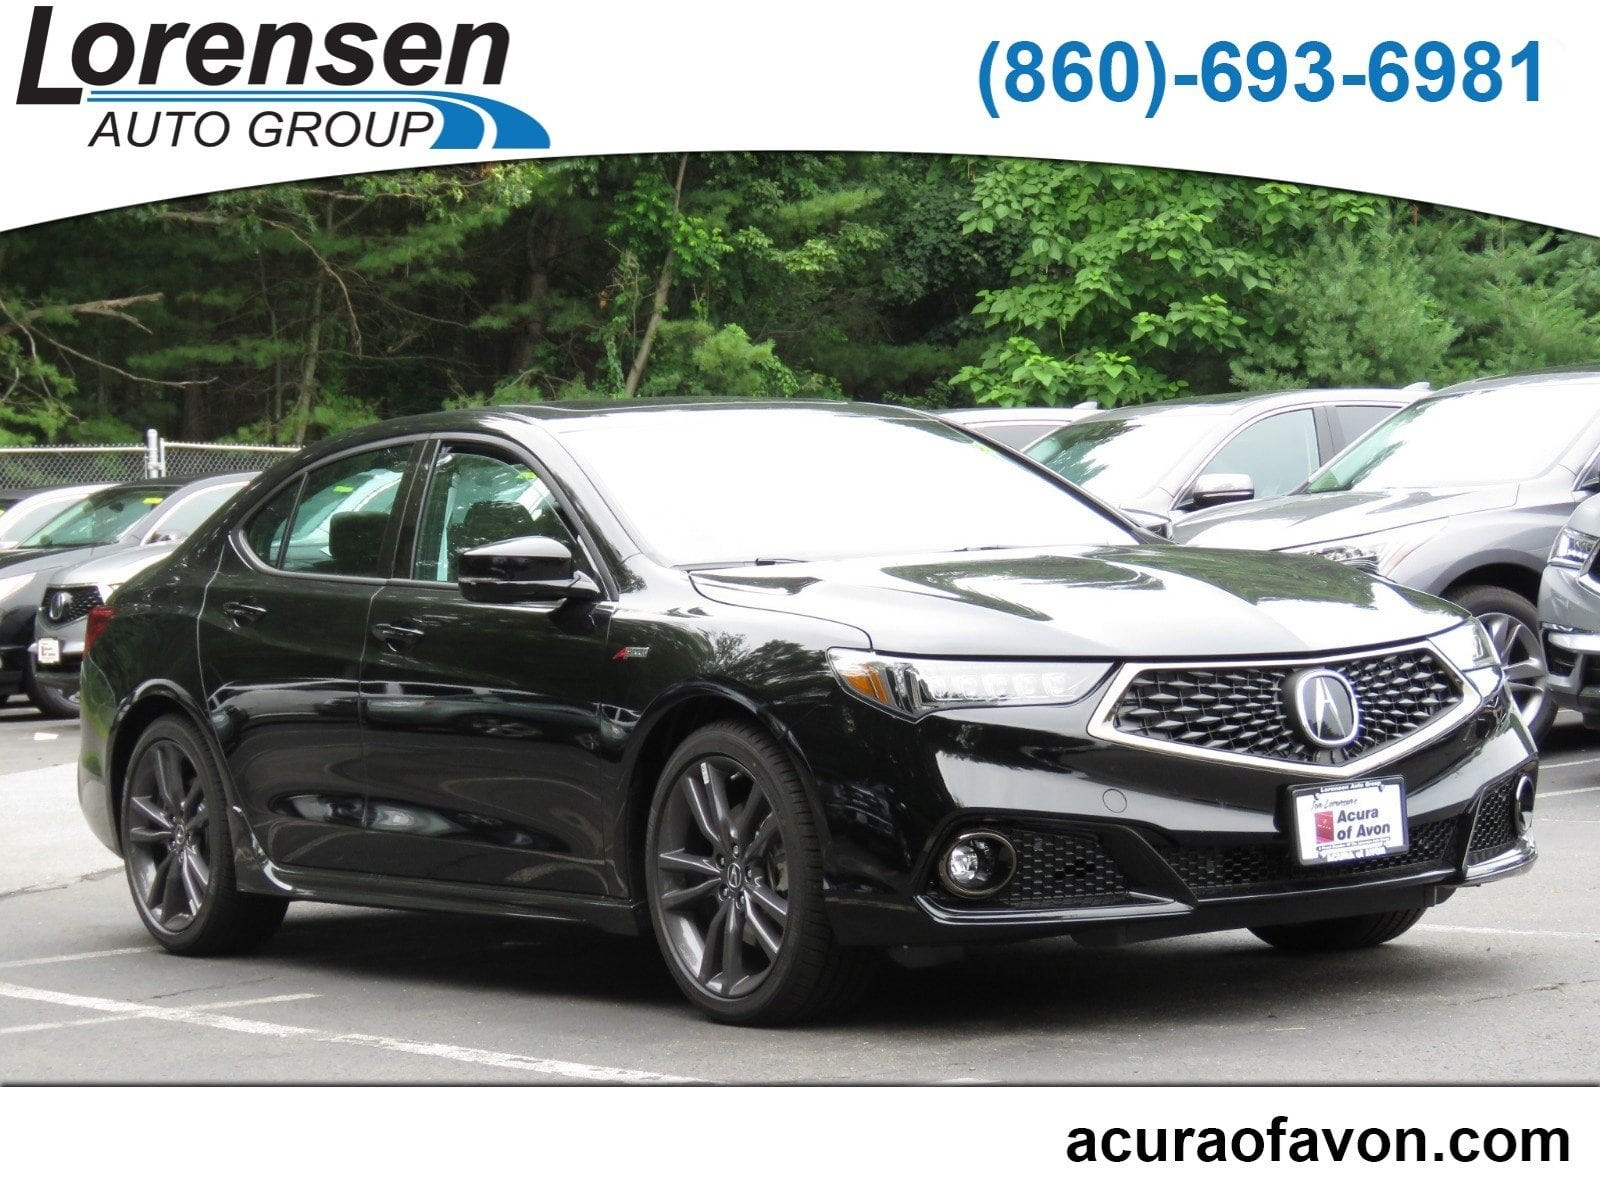 2019 Acura Lease Unique New 2019 Acura Tlx 2 4 8 Dct P Aws with A